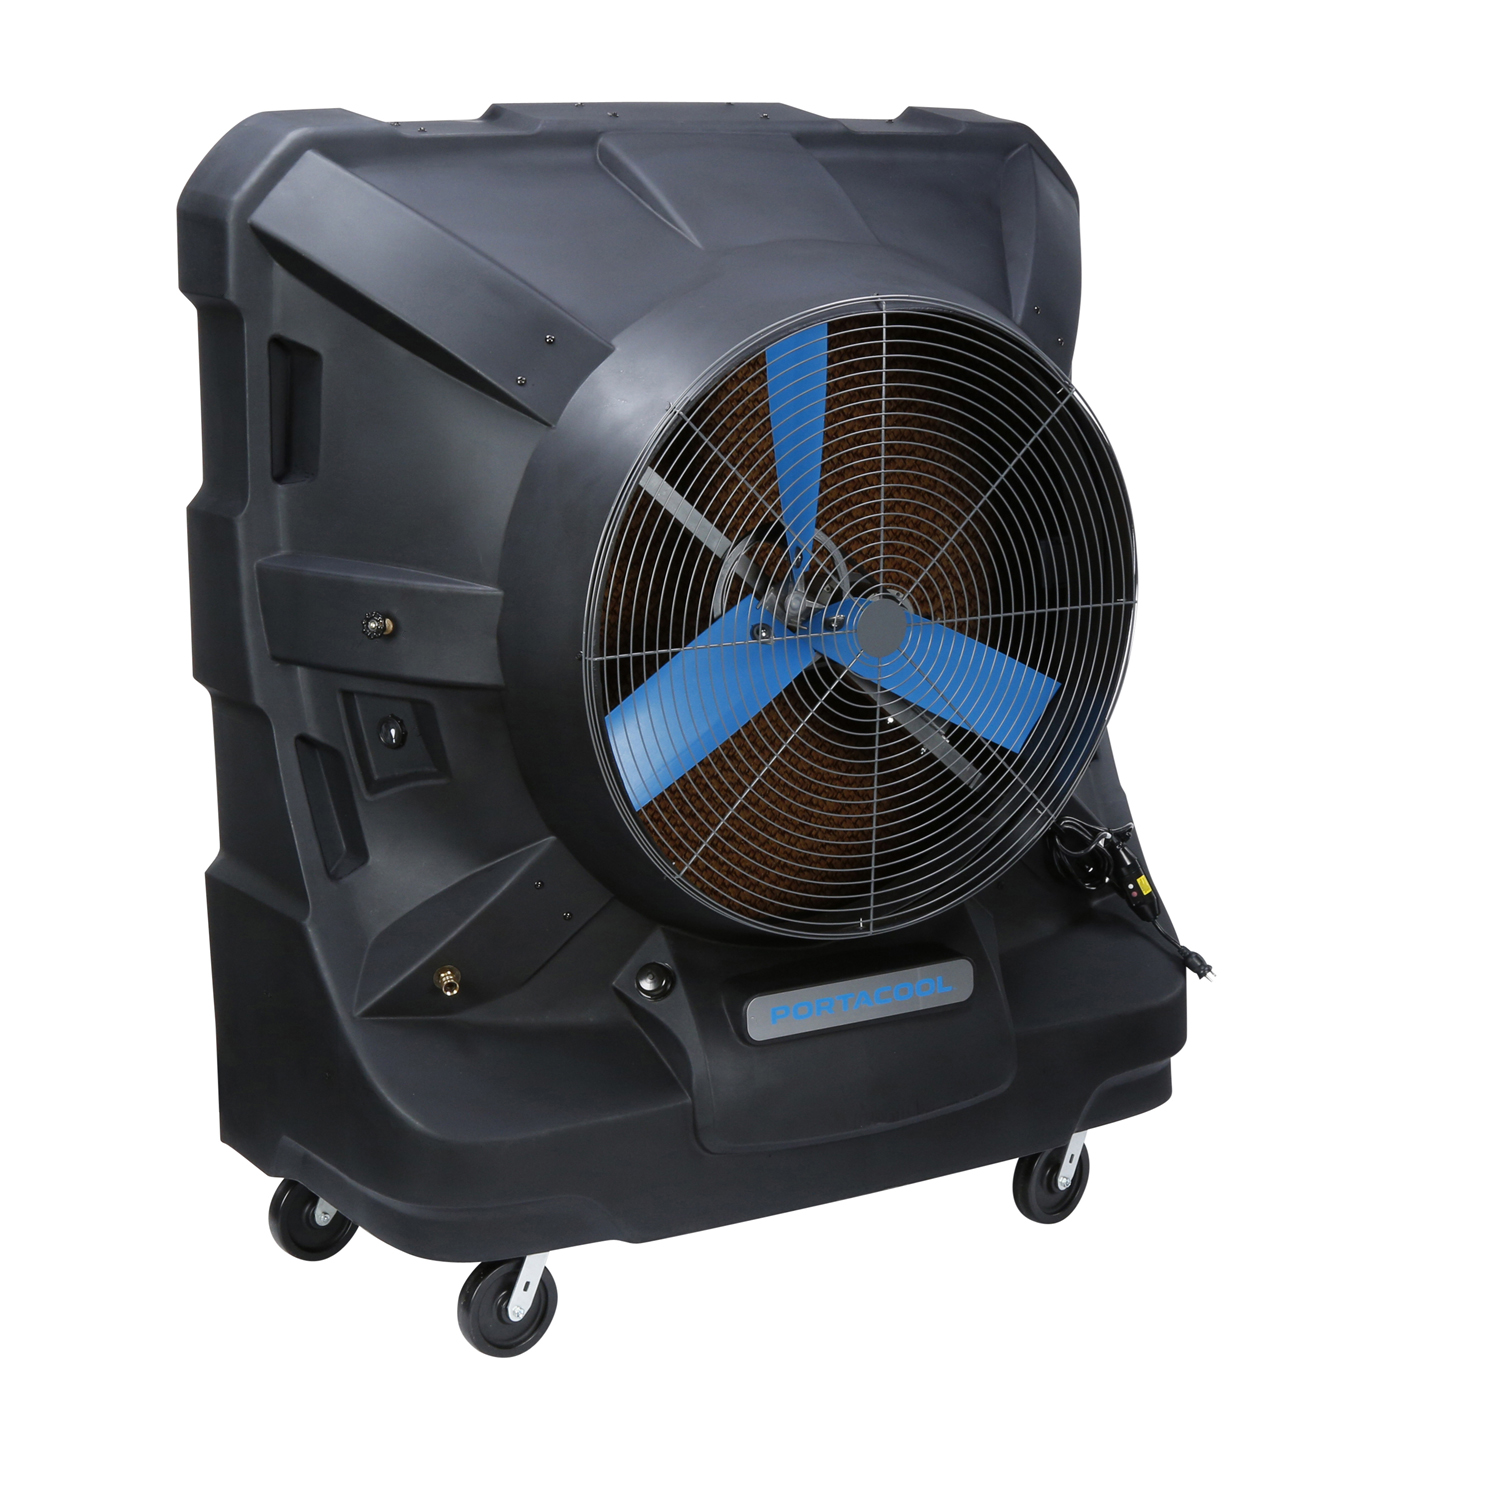 Portable-Evaporative-Cooler-Portacool-Safety-Cool-Jetstream-270-Right-Face